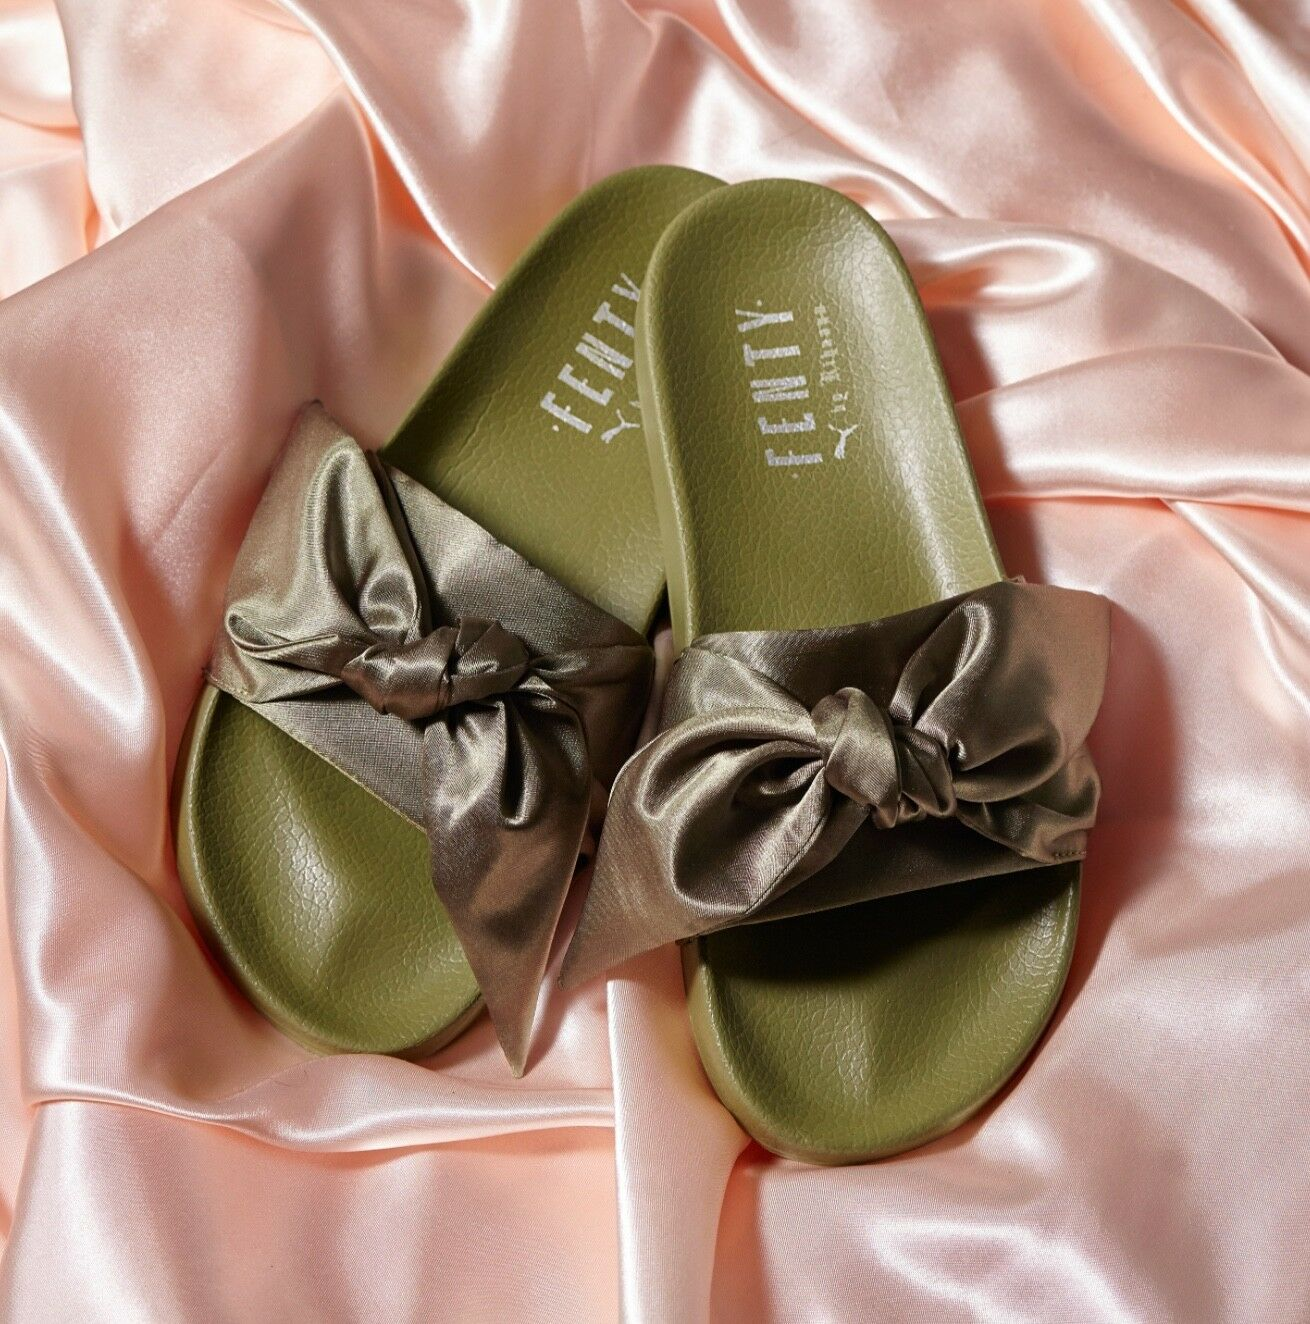 New with Box  Rihanna x Puma Fenty Bow Slide Sandals Olive Women's Size US5.5